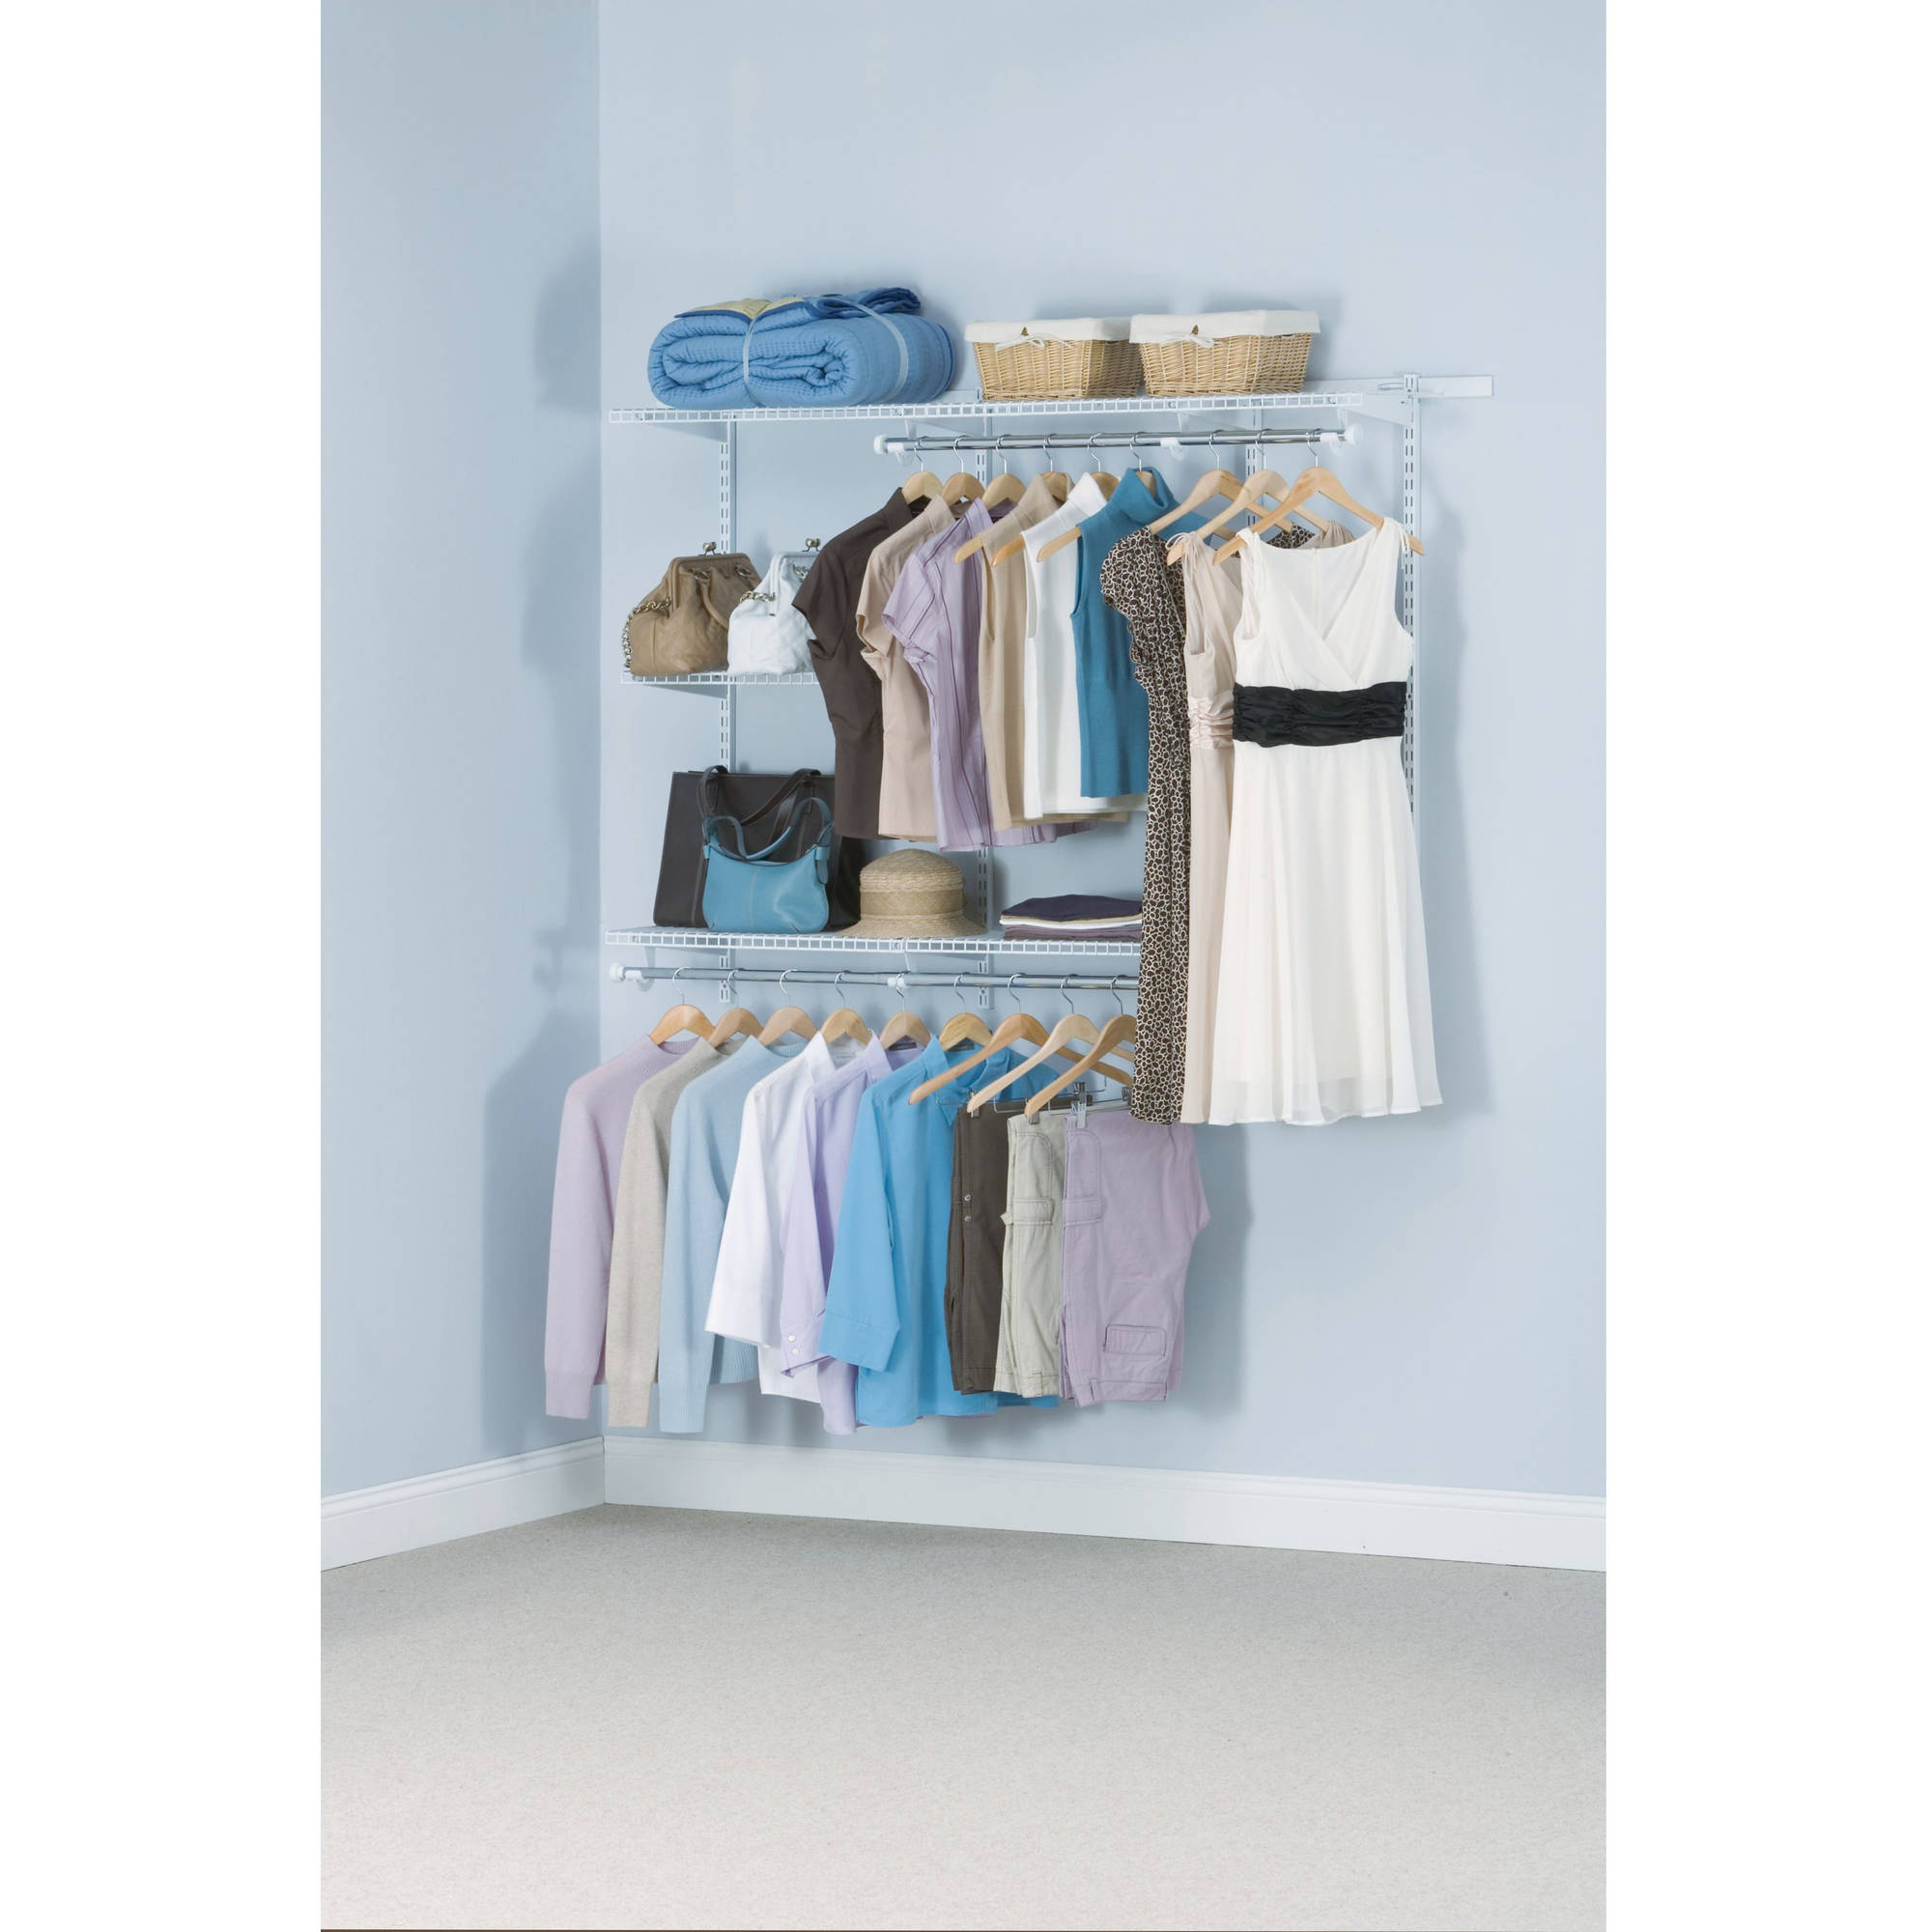 Rubbermaid Customizable and Configurable 3' to 6' Closet Kit, Titanium